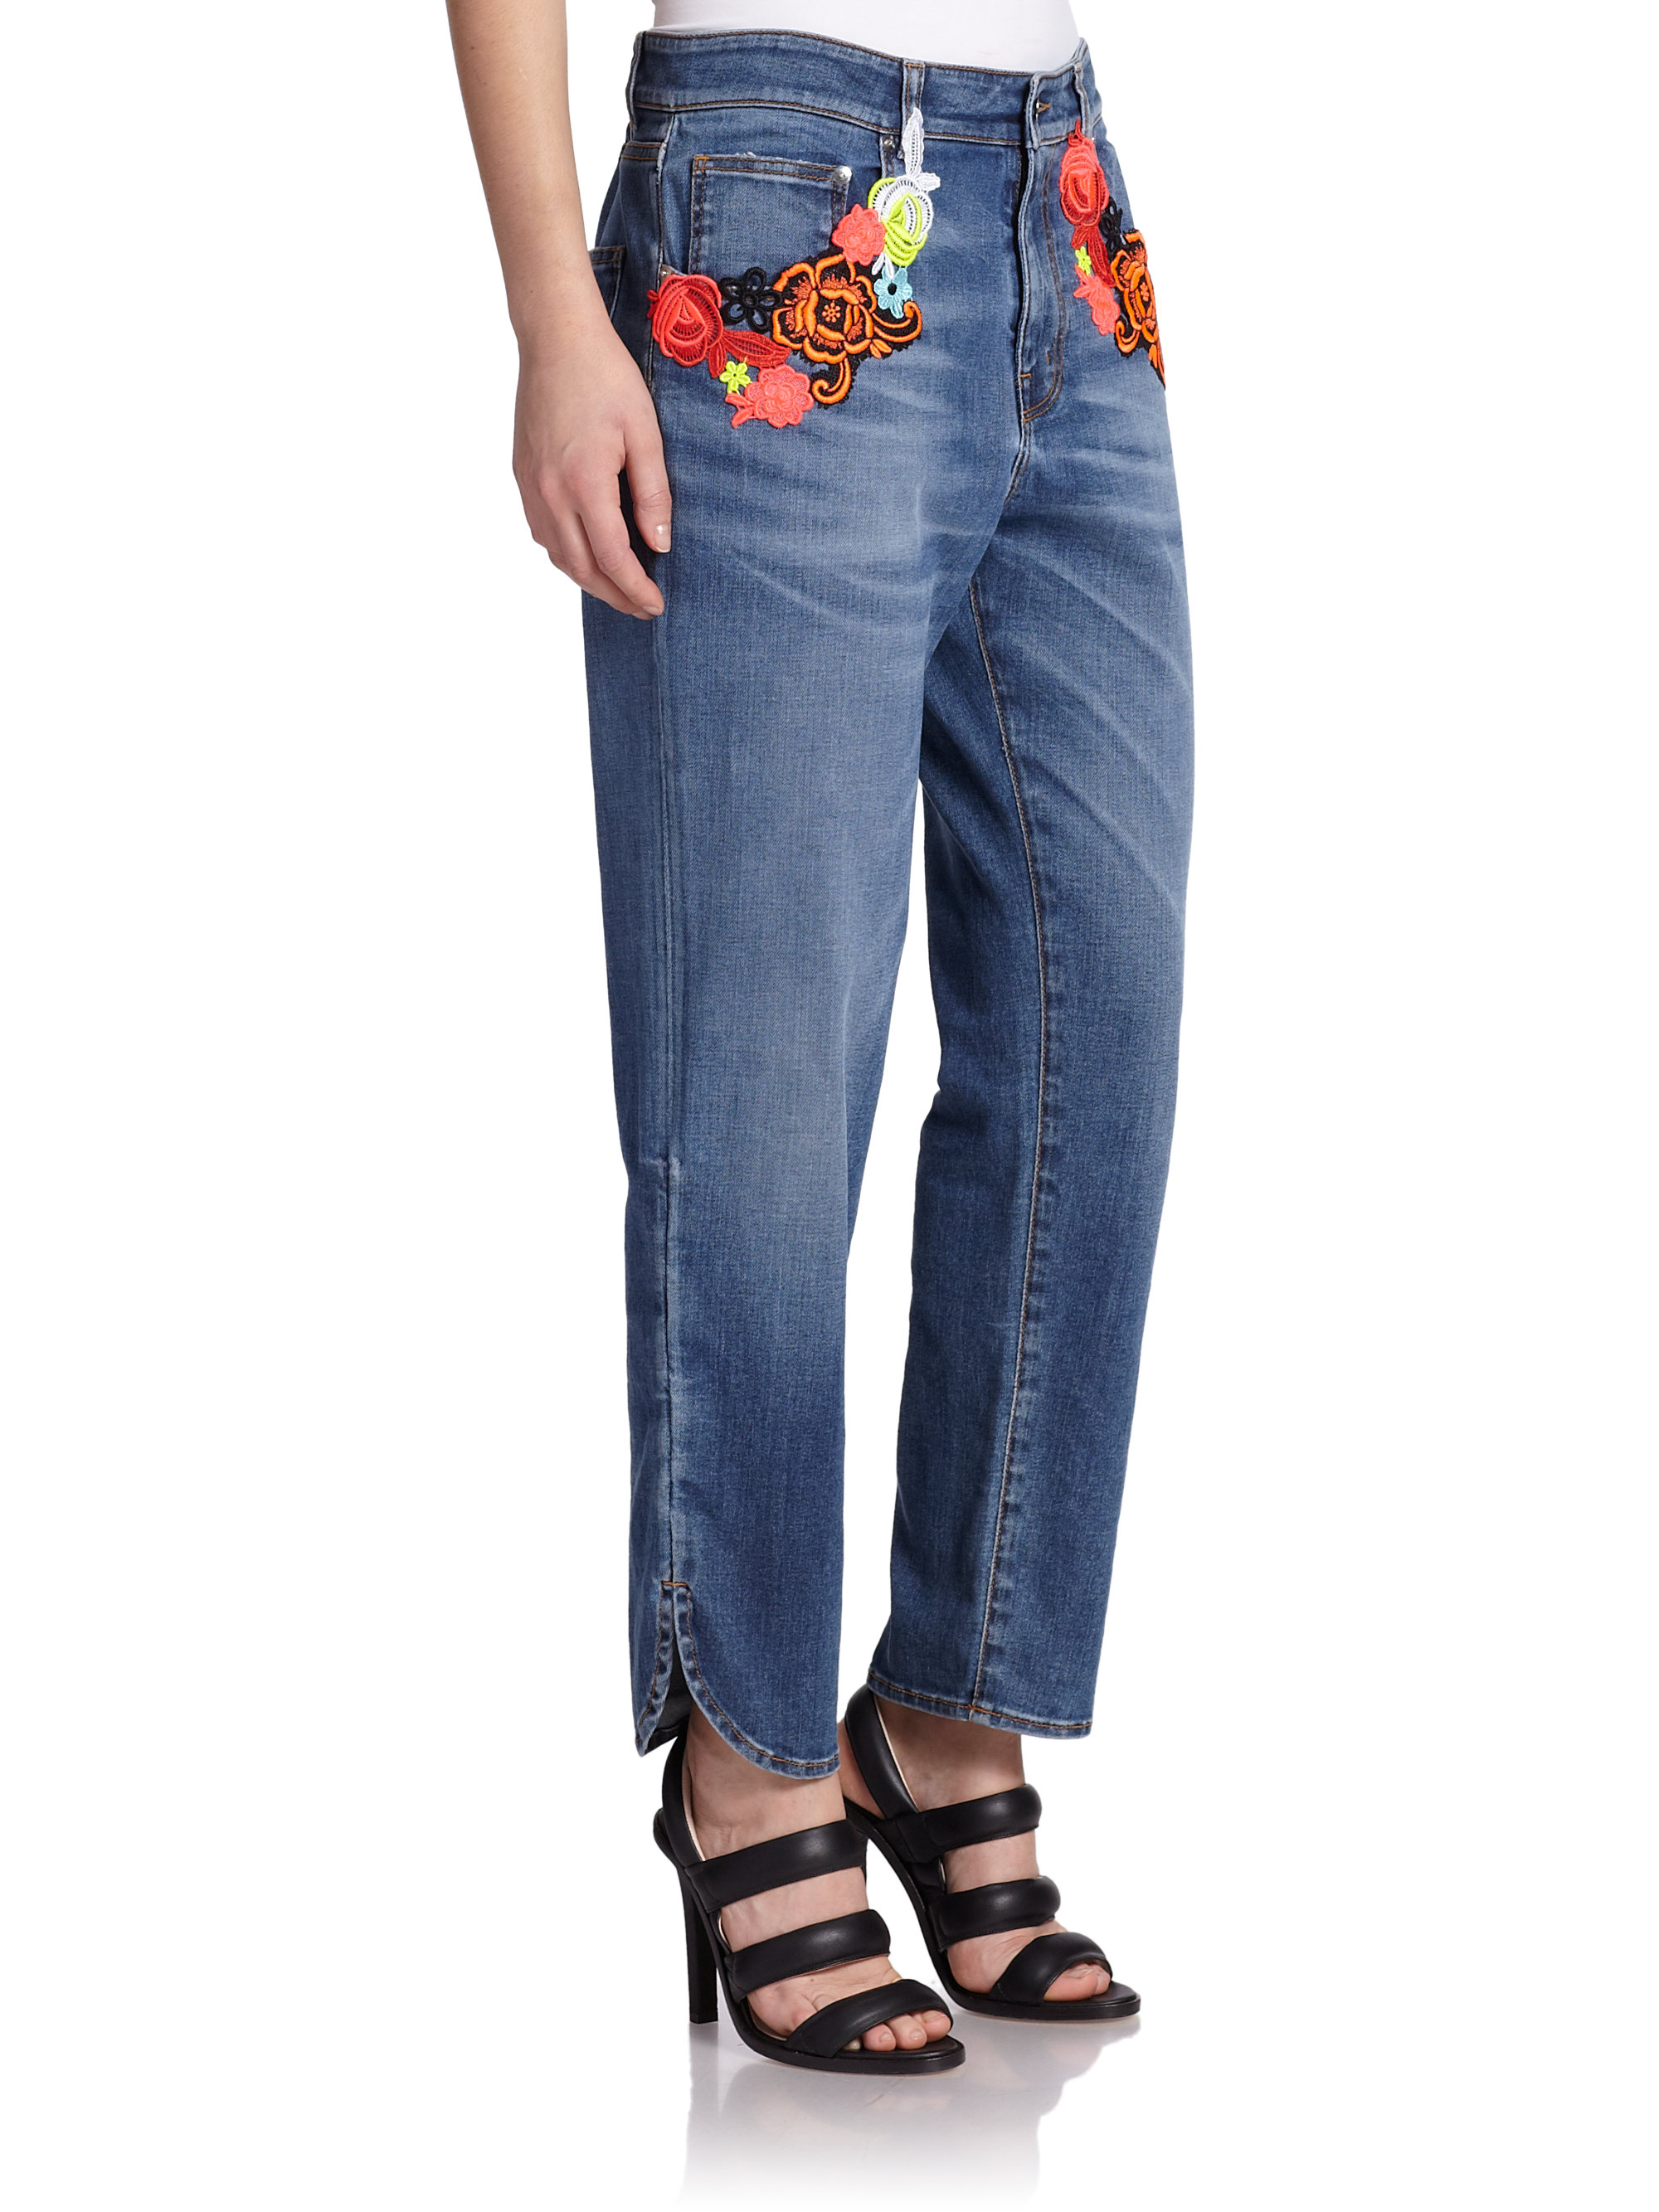 Pick A Best Online Free Shipping Footlocker Embroidered jeans Christopher Kane Cheap Sale 2018 bitPtYt9